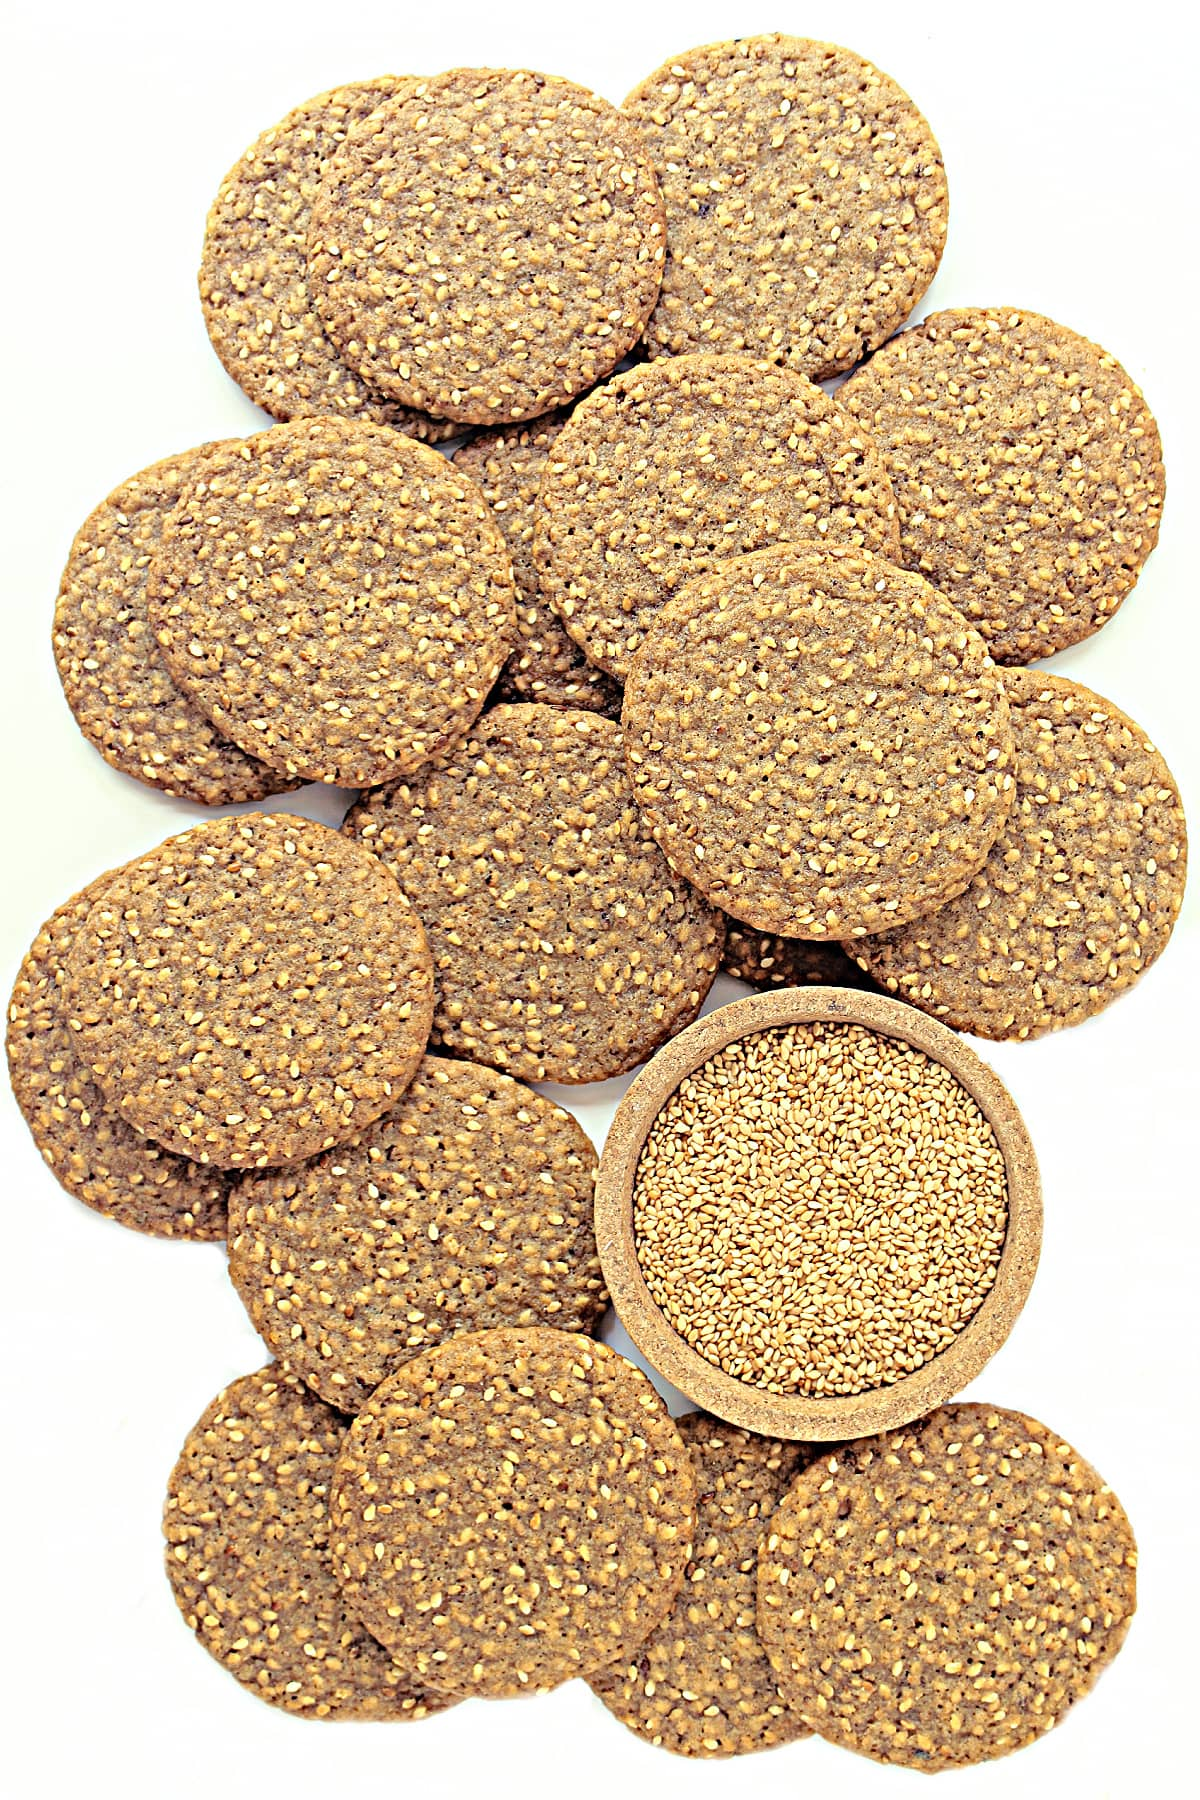 Brown sesame wafer cookies with a bowl of toasted sesame seeds on a white background.